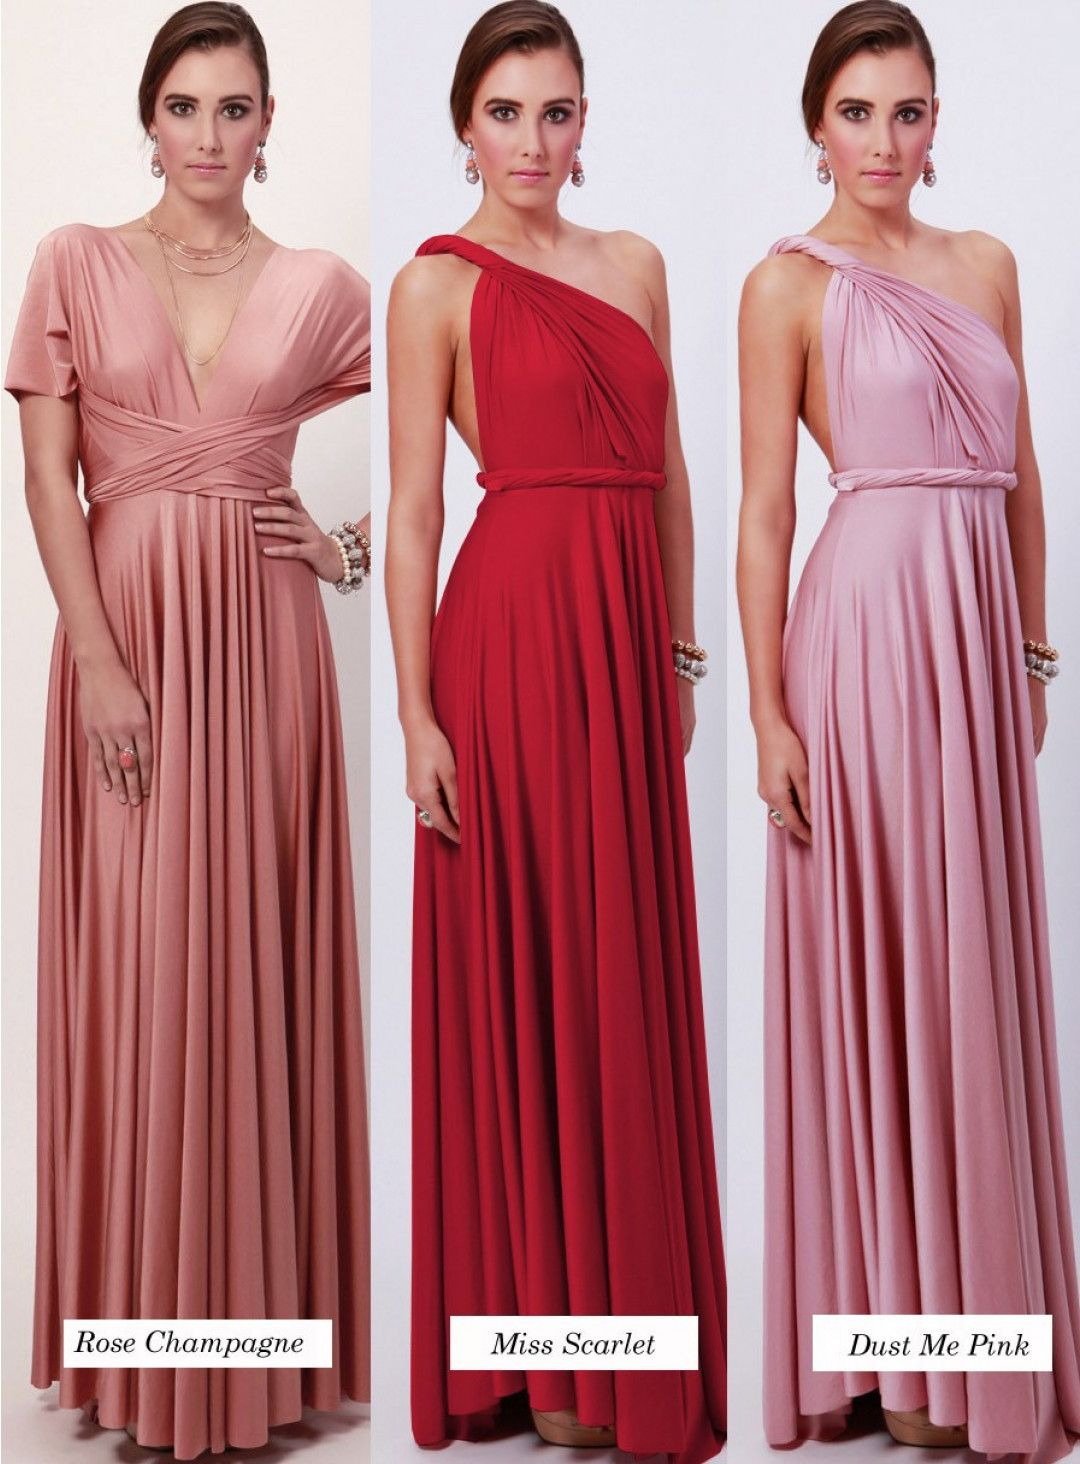 Multiway ballgown dress dresses are custom made to order so no the convertible maxi dress by goddess by nature is similar to the two birds convertible dress one dress can be worn in over 30 different ways ombrellifo Images